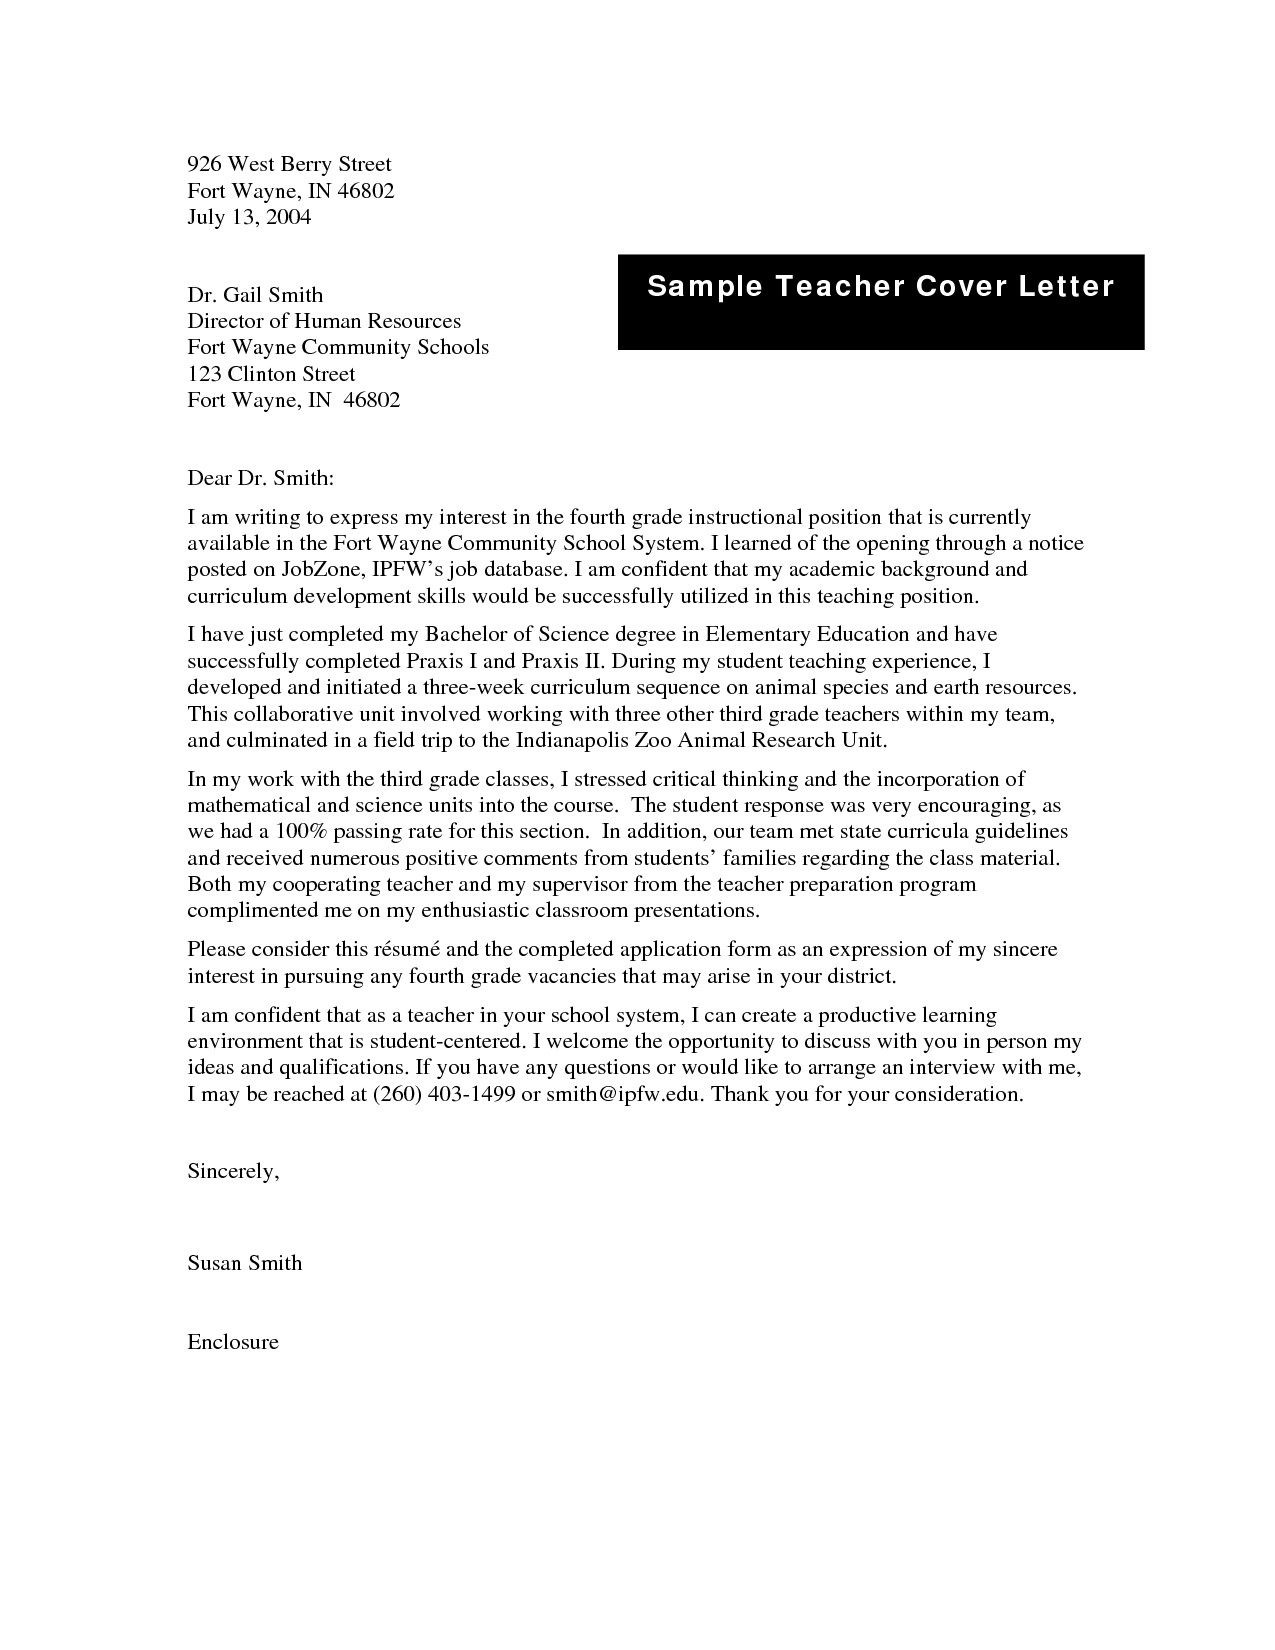 letter templates for teachers fieldstationco for formal letter format to a teacher 20036